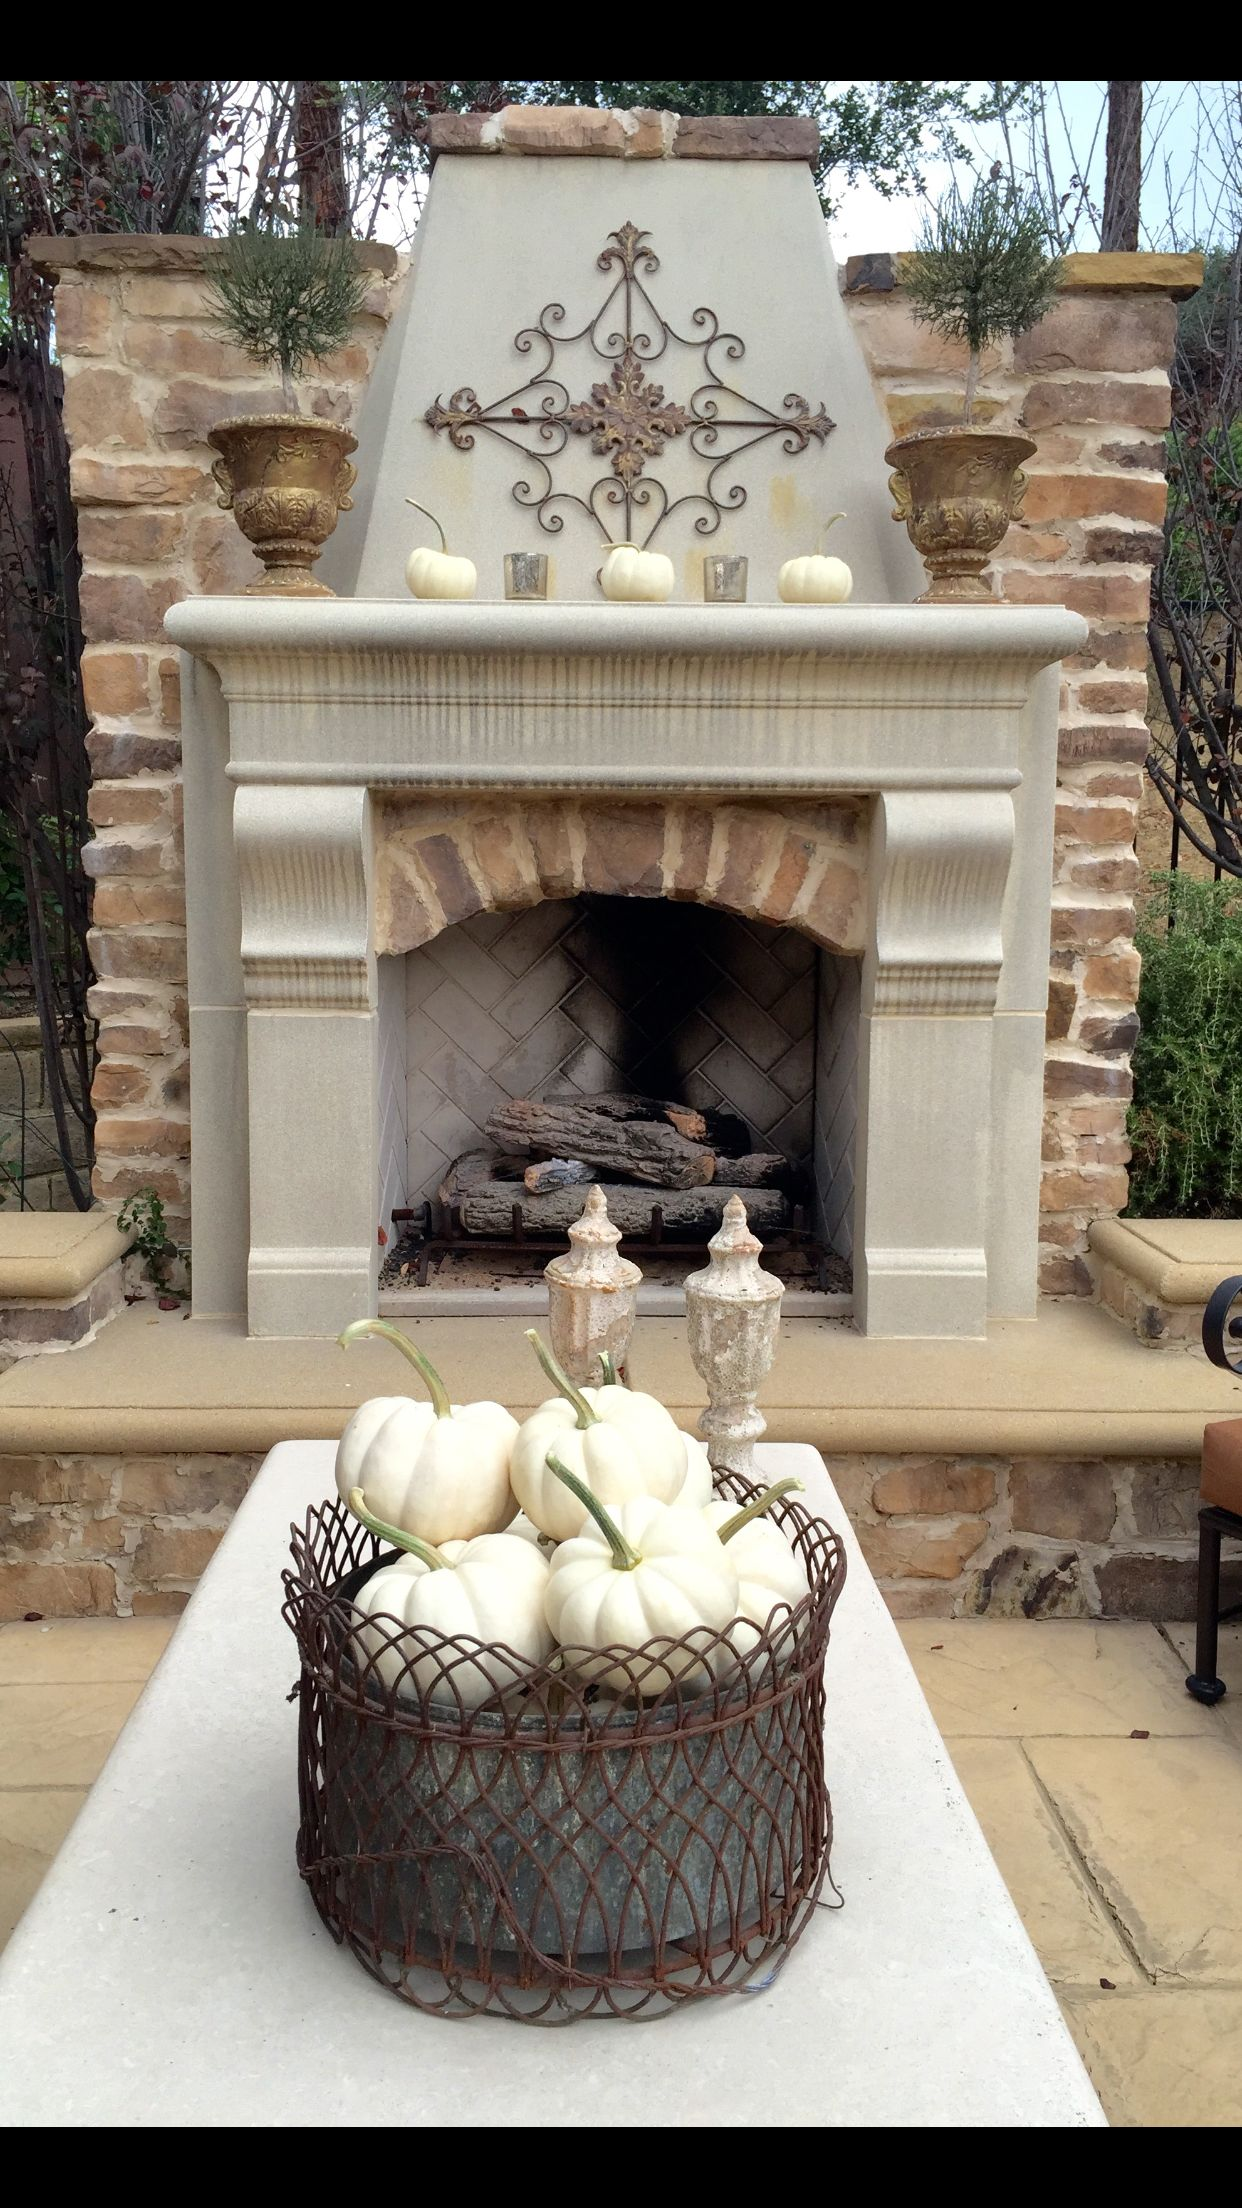 Fall in Southern Cal | Small outdoor patios, Outdoor ... on Southern Pools And Outdoor Living id=72050